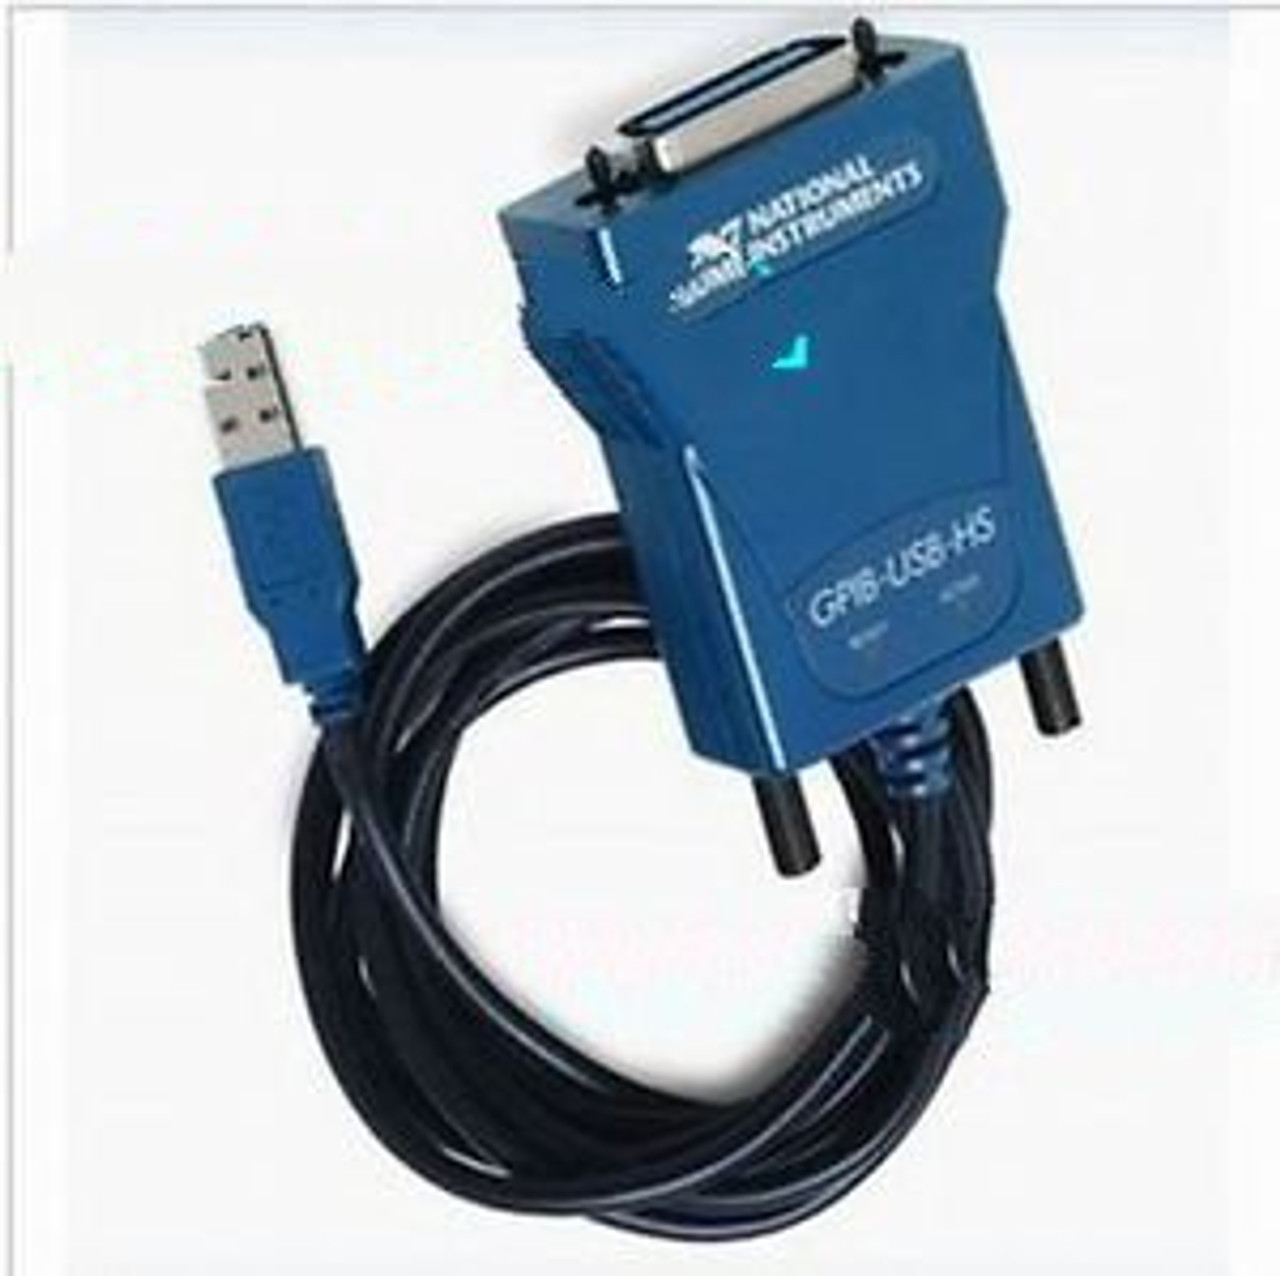 NEW IN BOX National Instrumens NI GPIB-USB-HS Interface Adapter IEEE 488